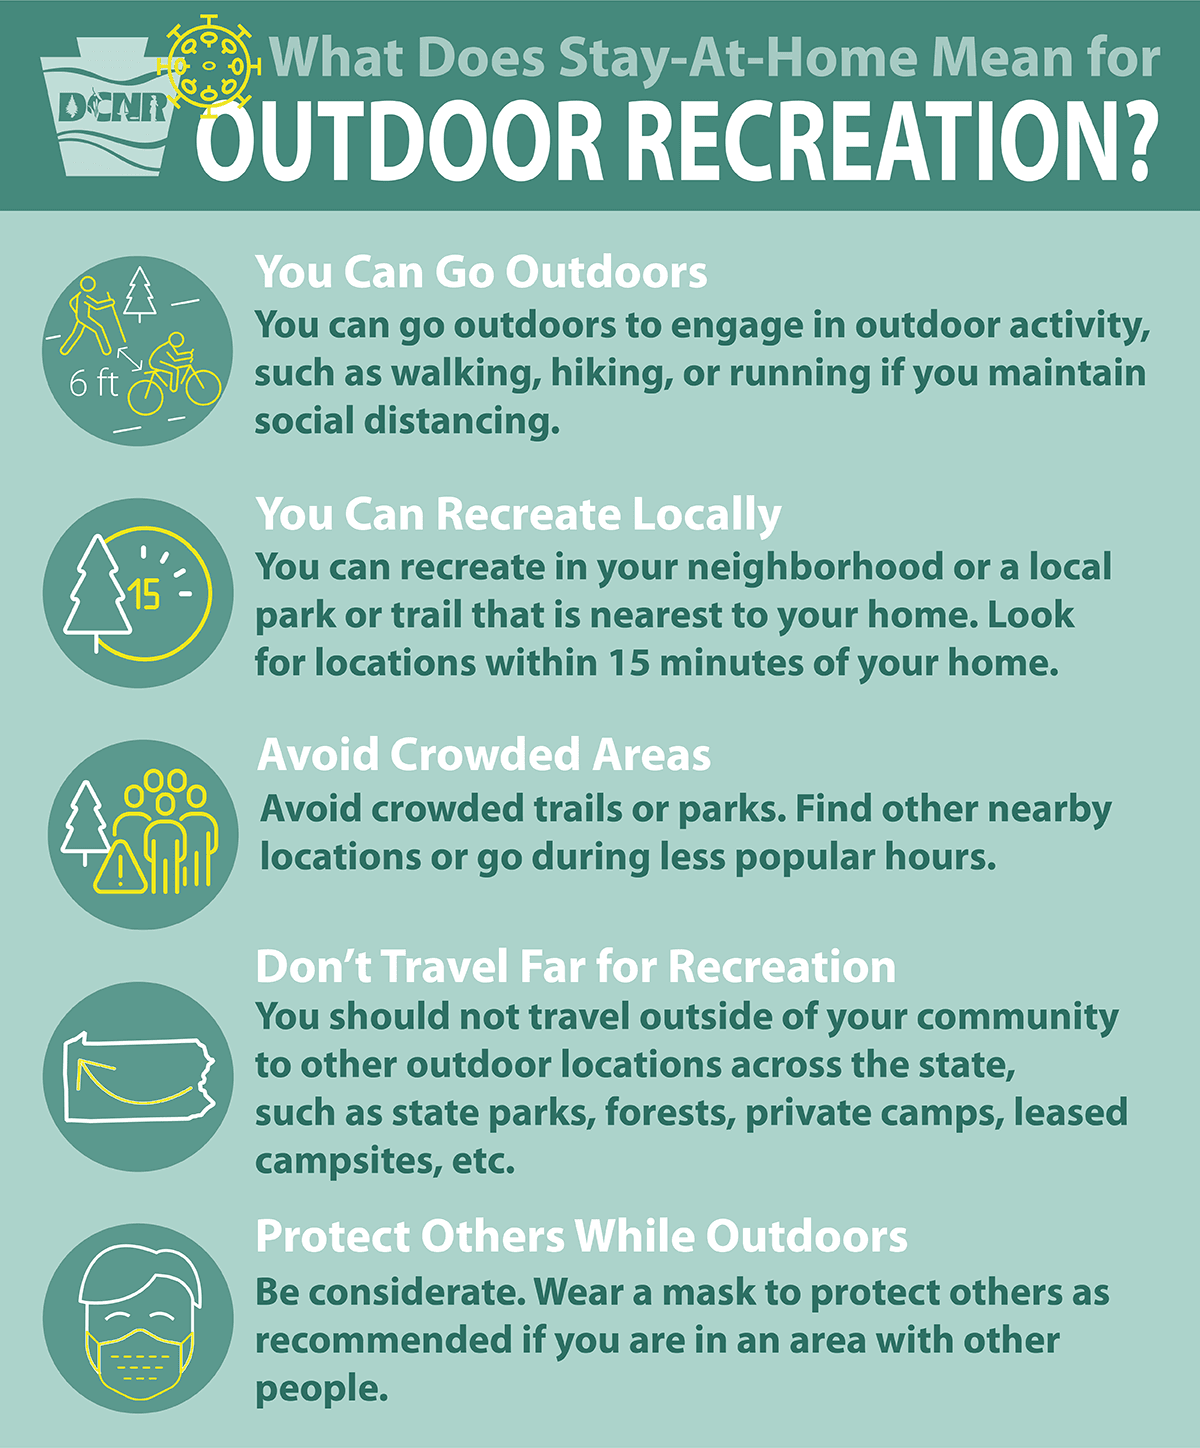 Stay at Home and Outdoor Recreation